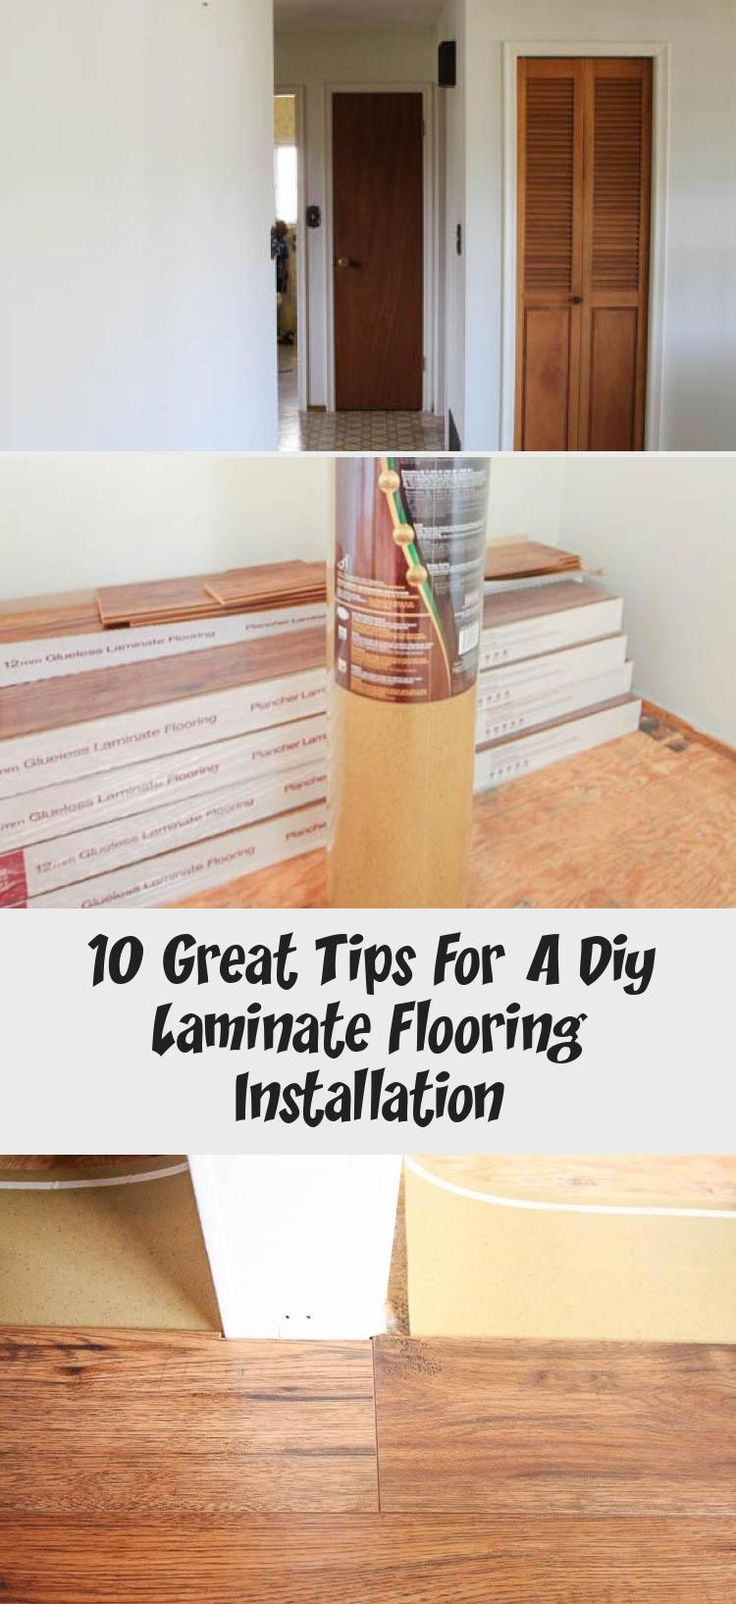 10 Great Tips For A Diy Laminate Flooring Installation in